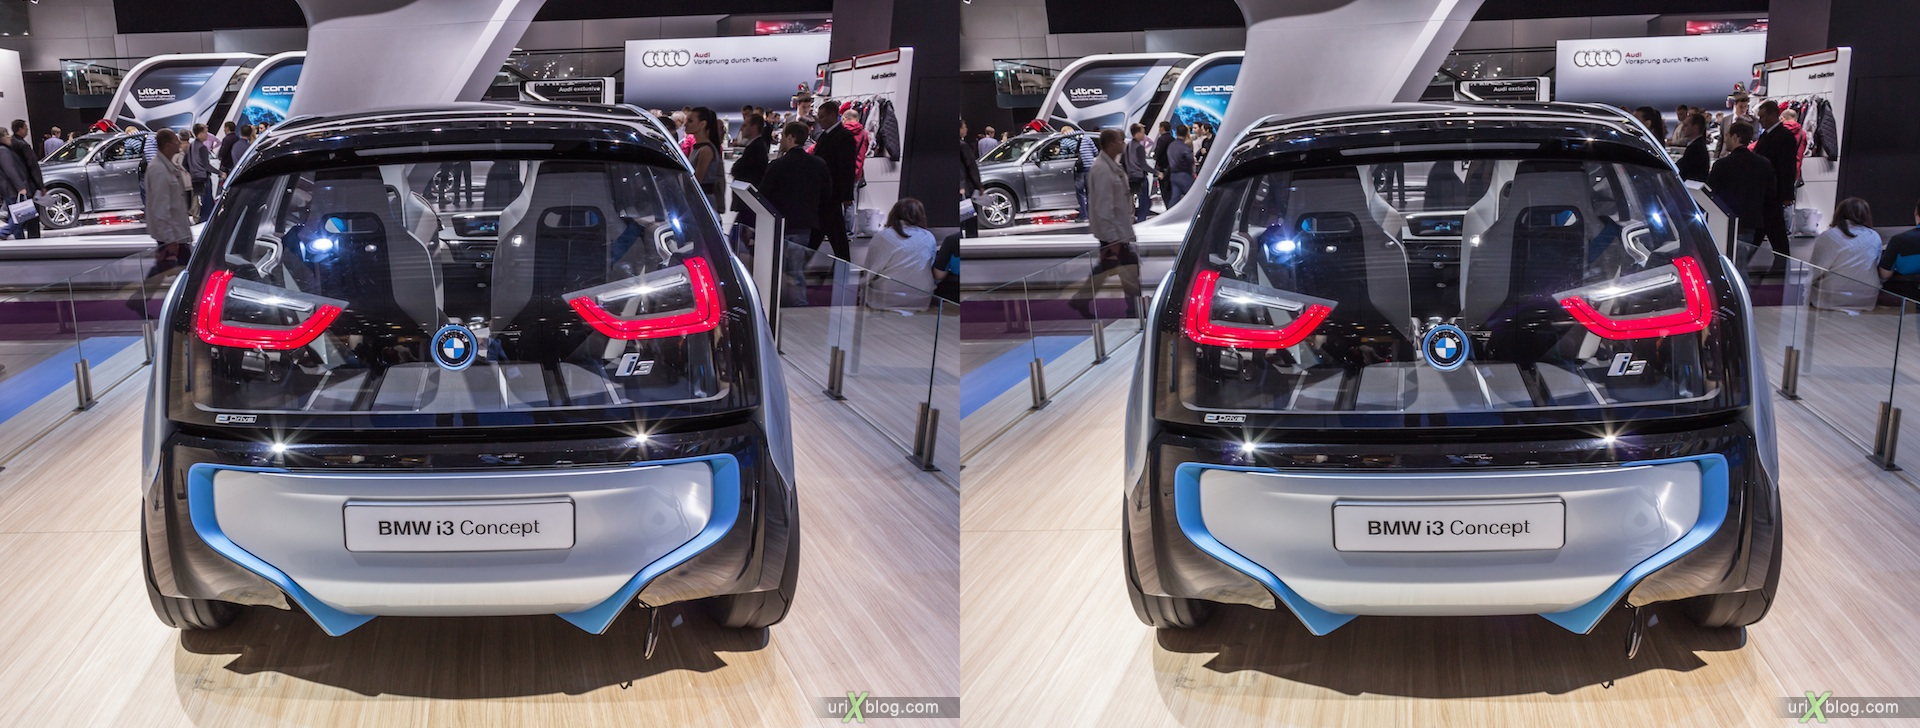 2012, BMW i3 Concept, Moscow International Automobile Salon, auto show, 3D, stereo pair, cross-eyed, crossview